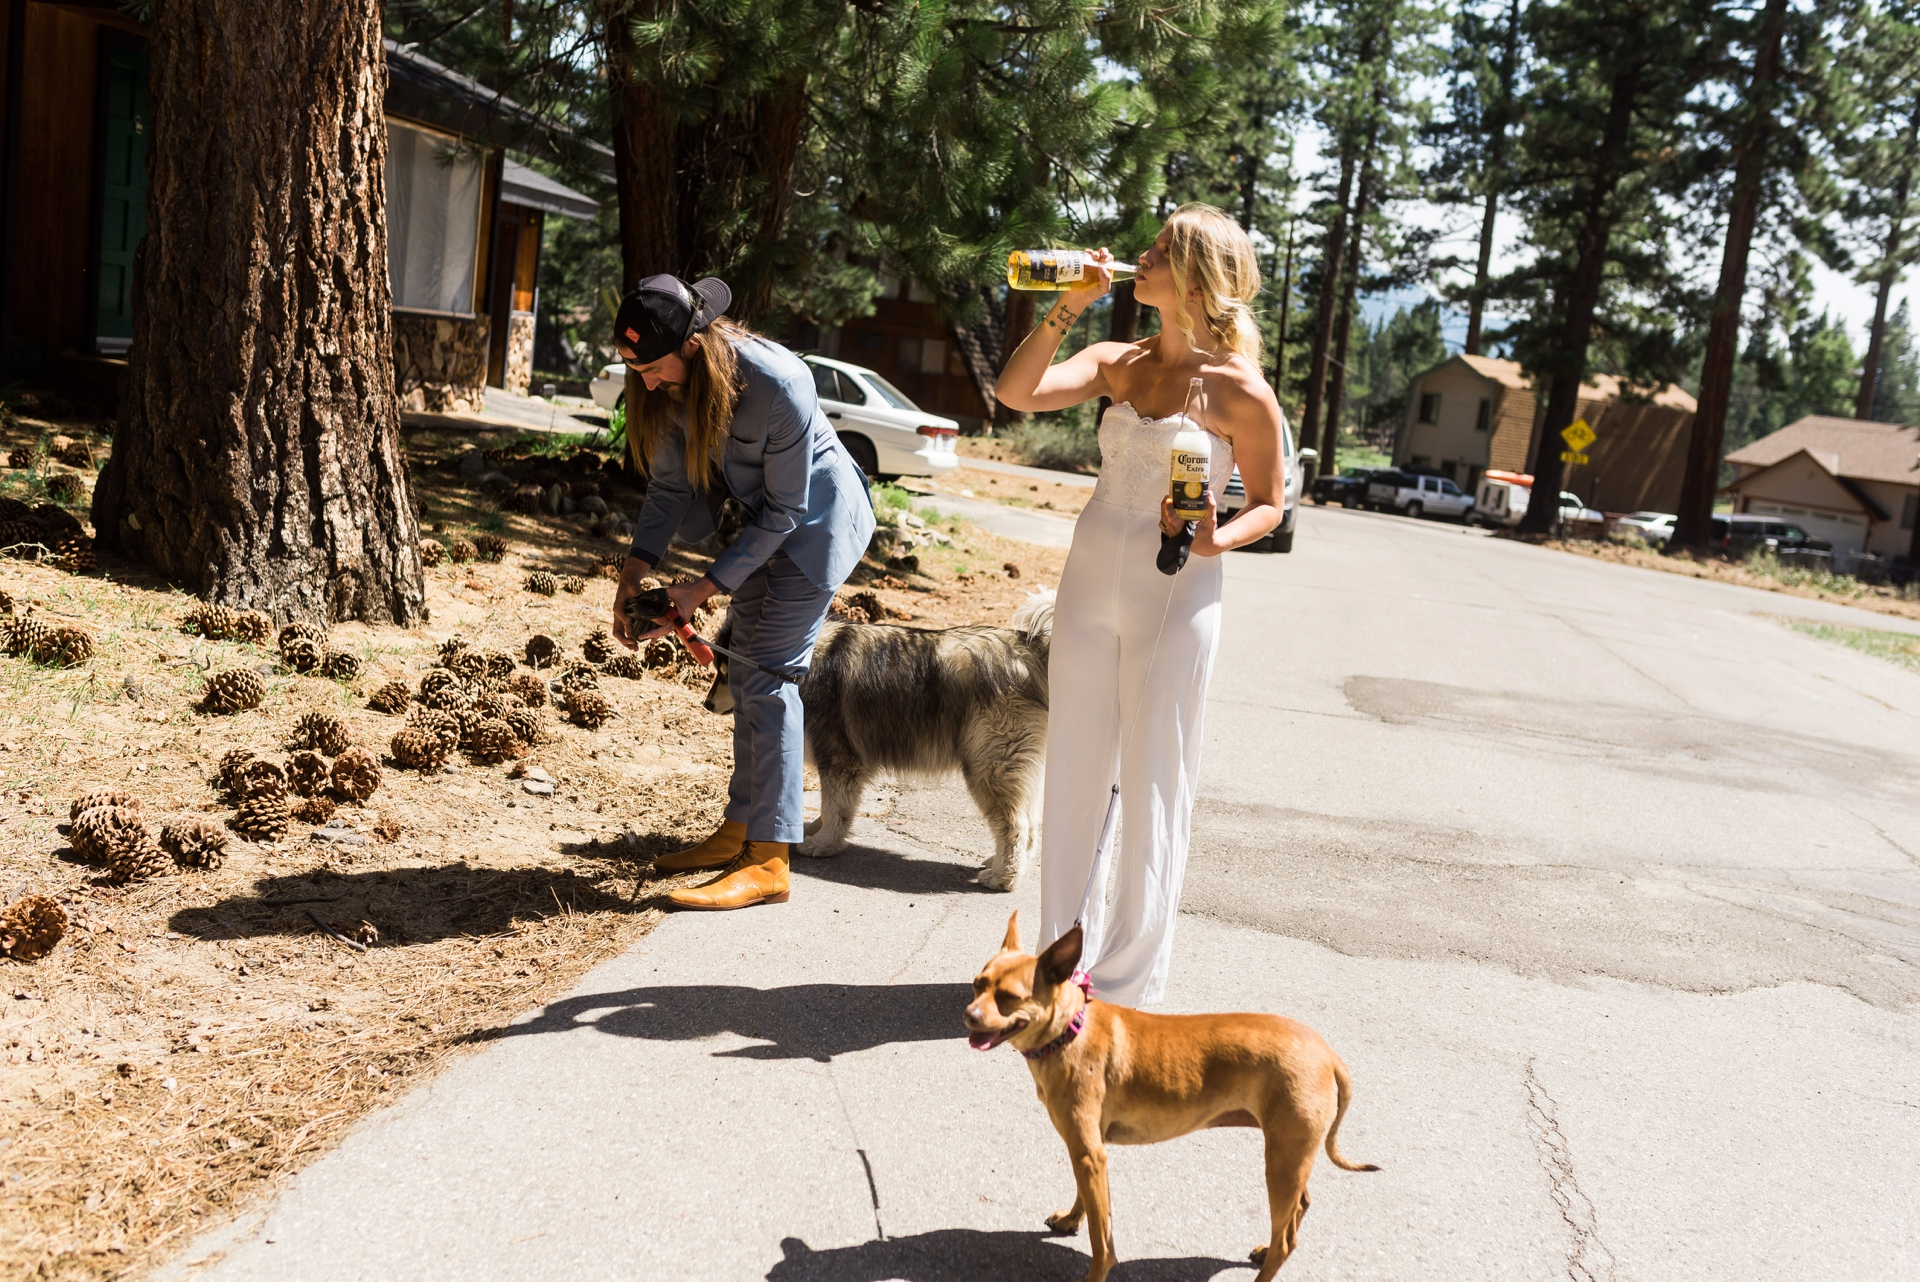 COVID-19 California Elopement Photography | Dog parent duties are never done, even on your wedding day